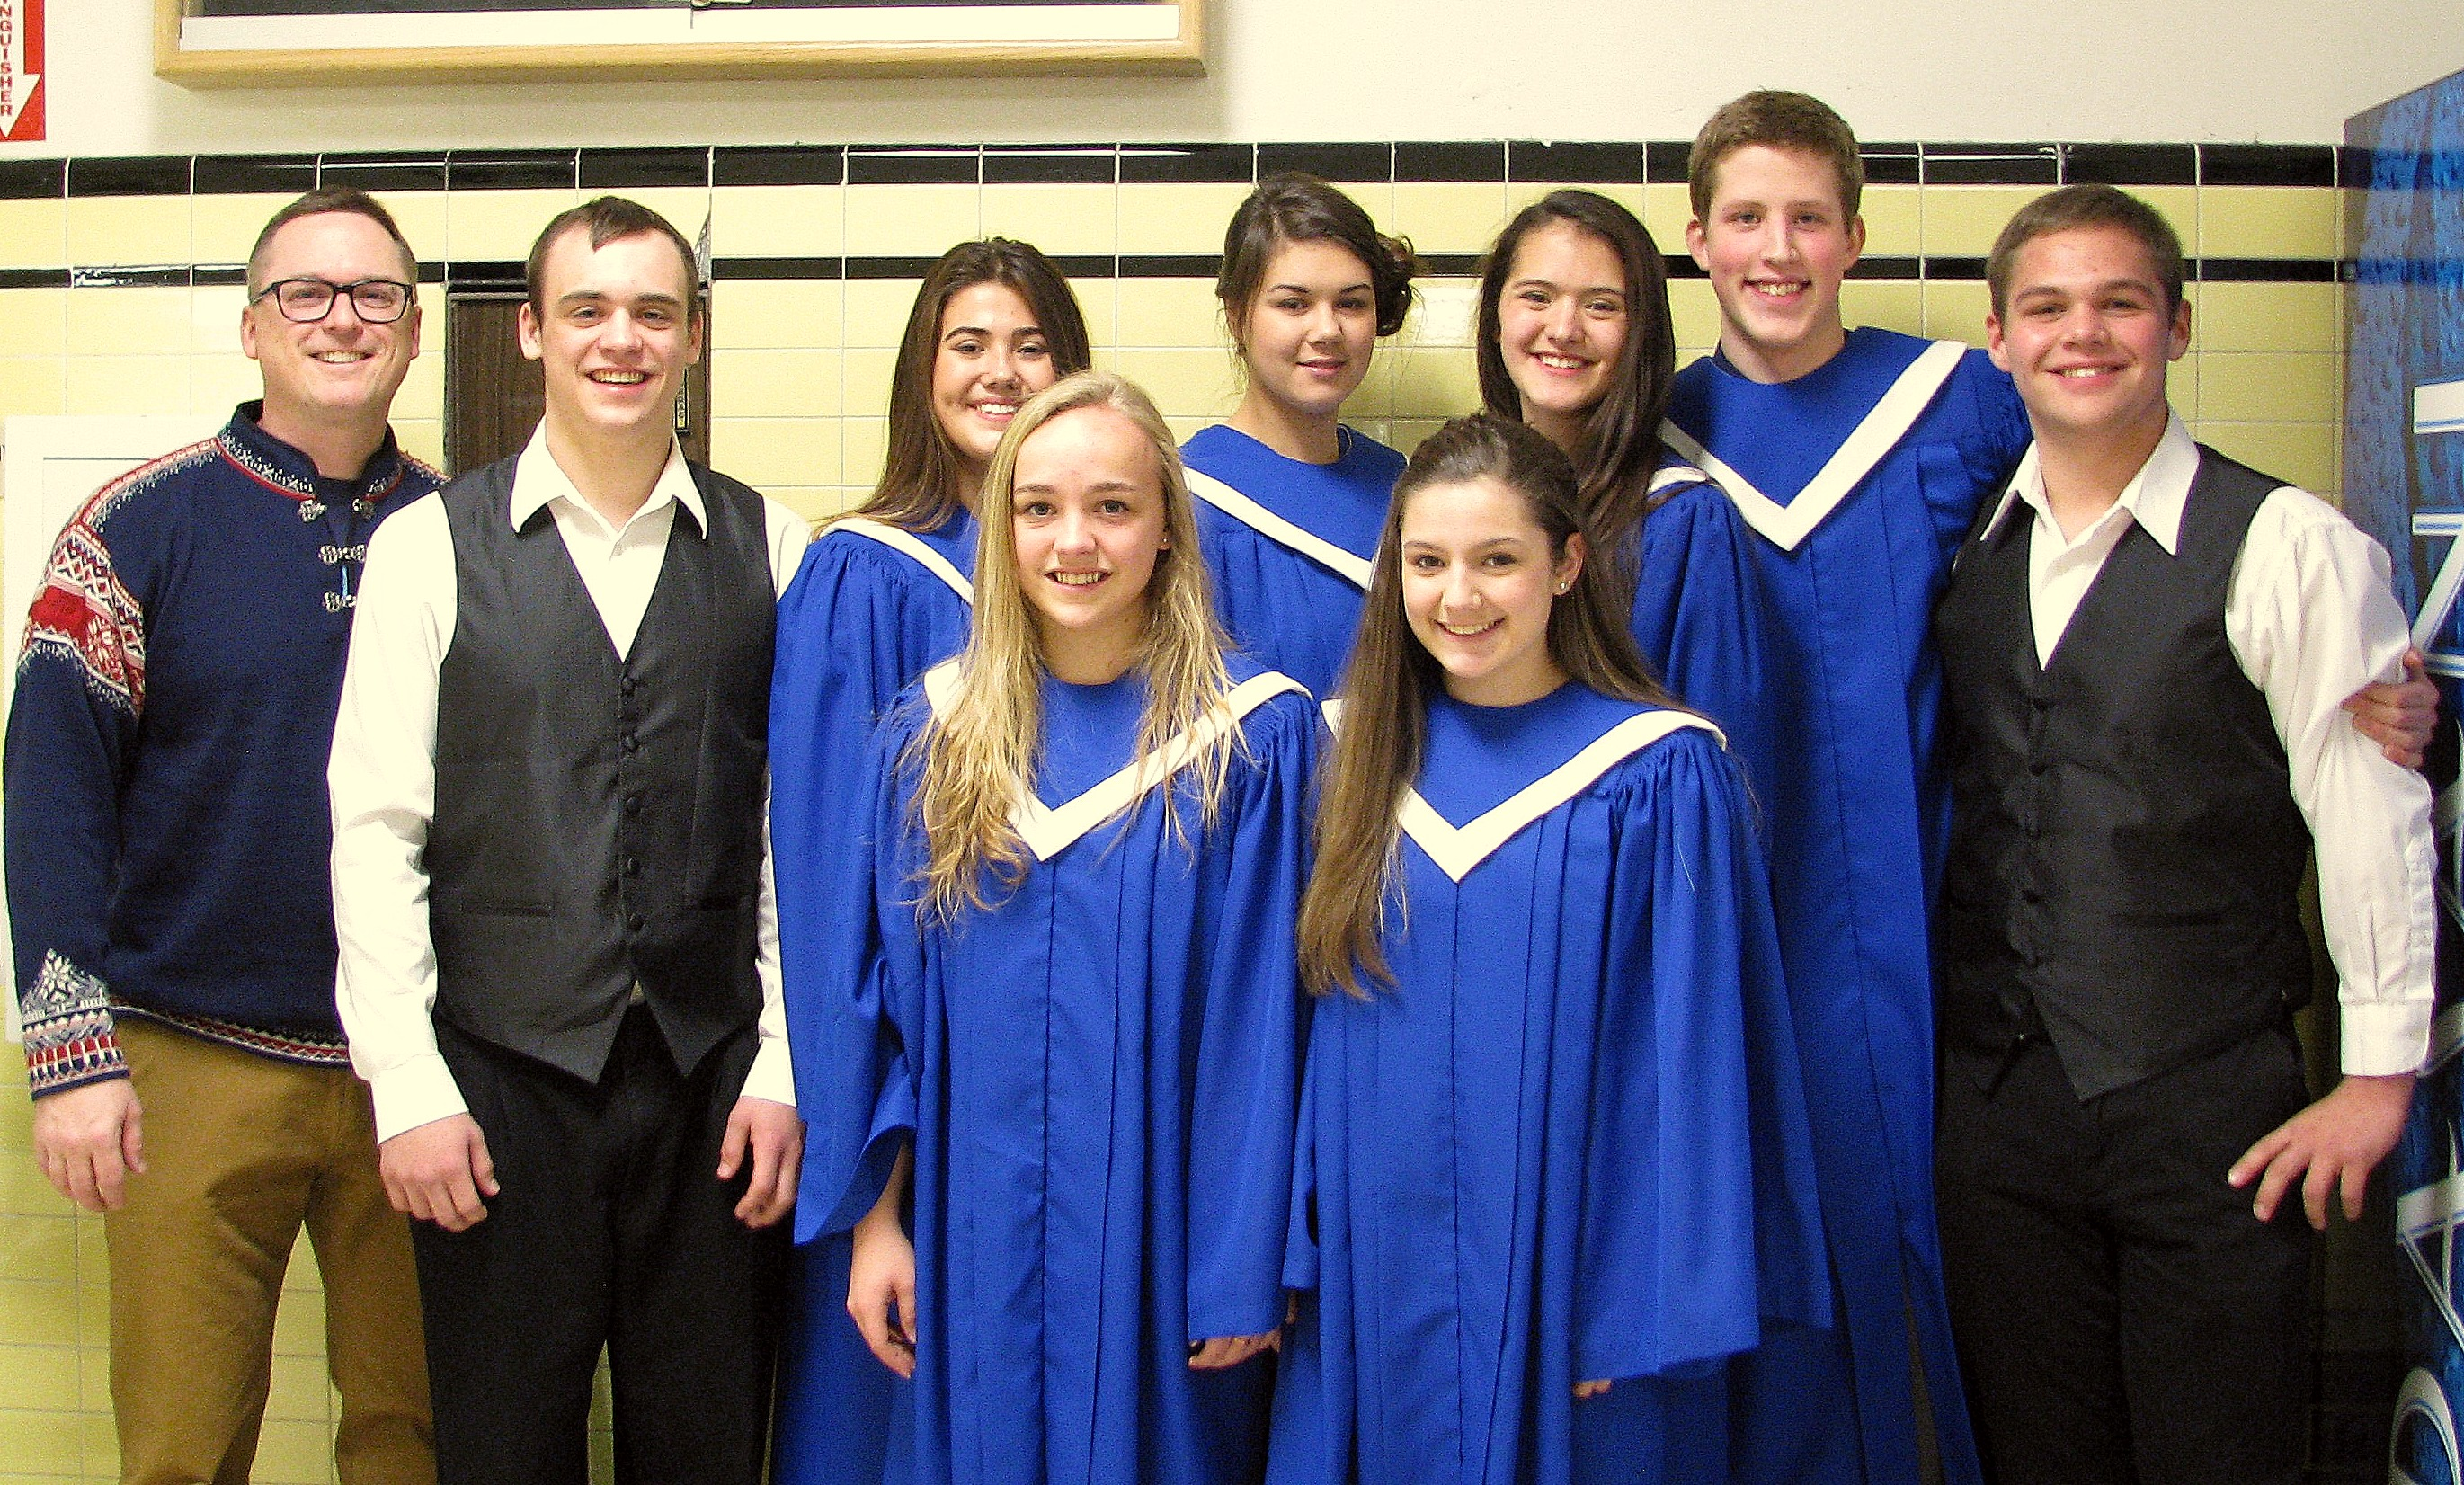 A record 8 students make the All-State Music Festival